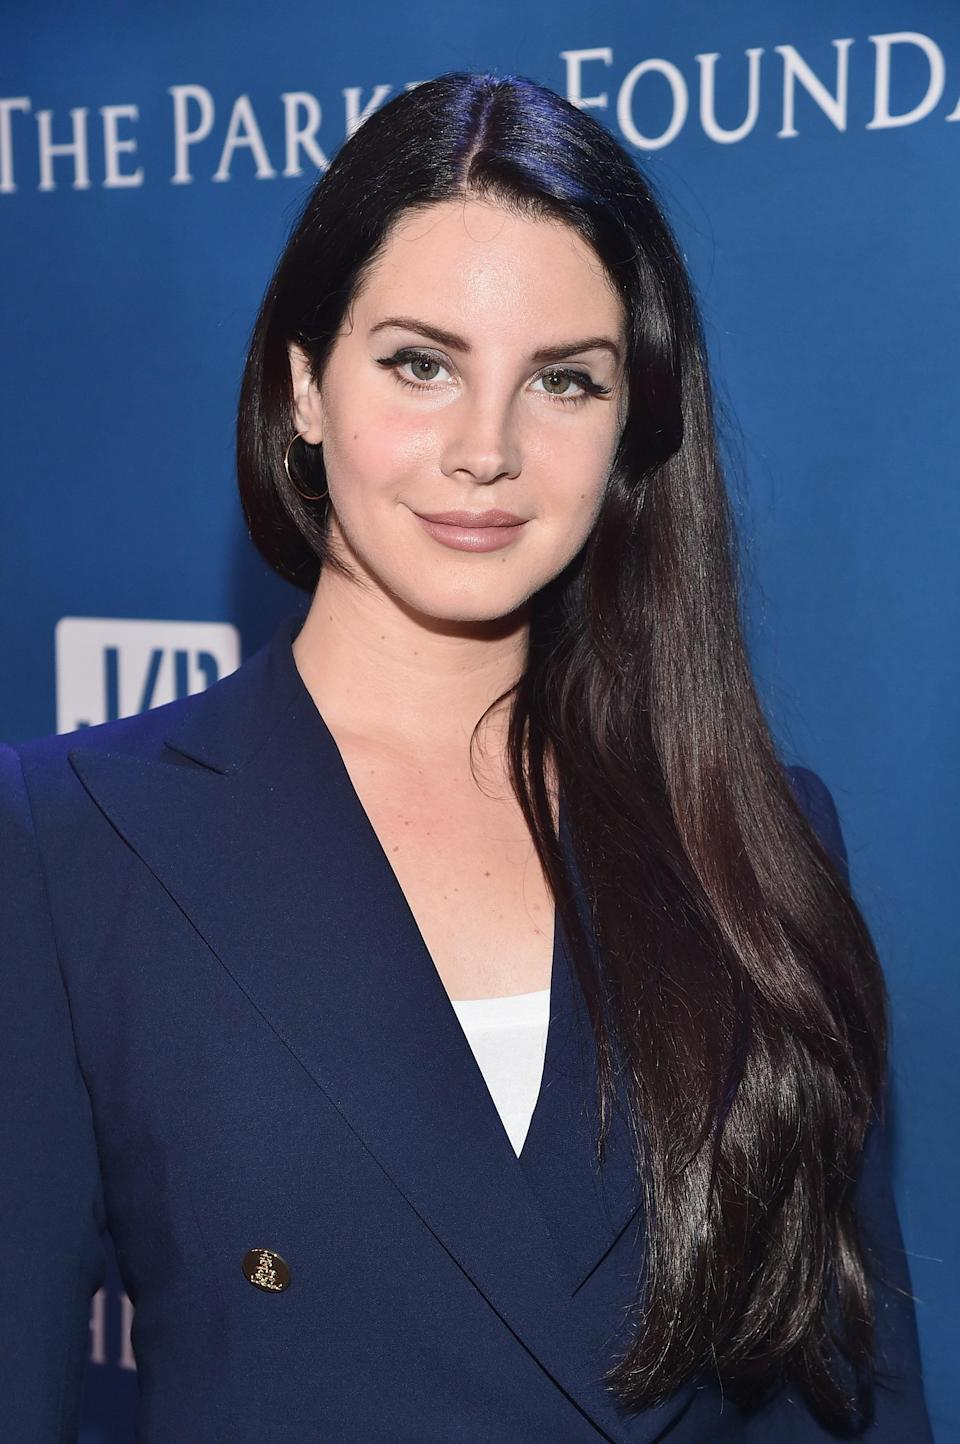 """Born Elizabeth Woolridge Grant, the singer changed her name after she released an album using the moniker Lizzy Grant that flopped. In an effort to reinvent herself, she became Lana Del Rey. The new stage name came to her after a trip to Miami, where she <a href=""""https://www.youtube.com/watch?v=UpijyKyKdiQ"""" rel=""""nofollow noopener"""" target=""""_blank"""" data-ylk=""""slk:decided"""" class=""""link rapid-noclick-resp"""">decided</a> she """"wanted a name that sounded sort of exotic and reminded me of like the seaside on the Floridian coast."""""""